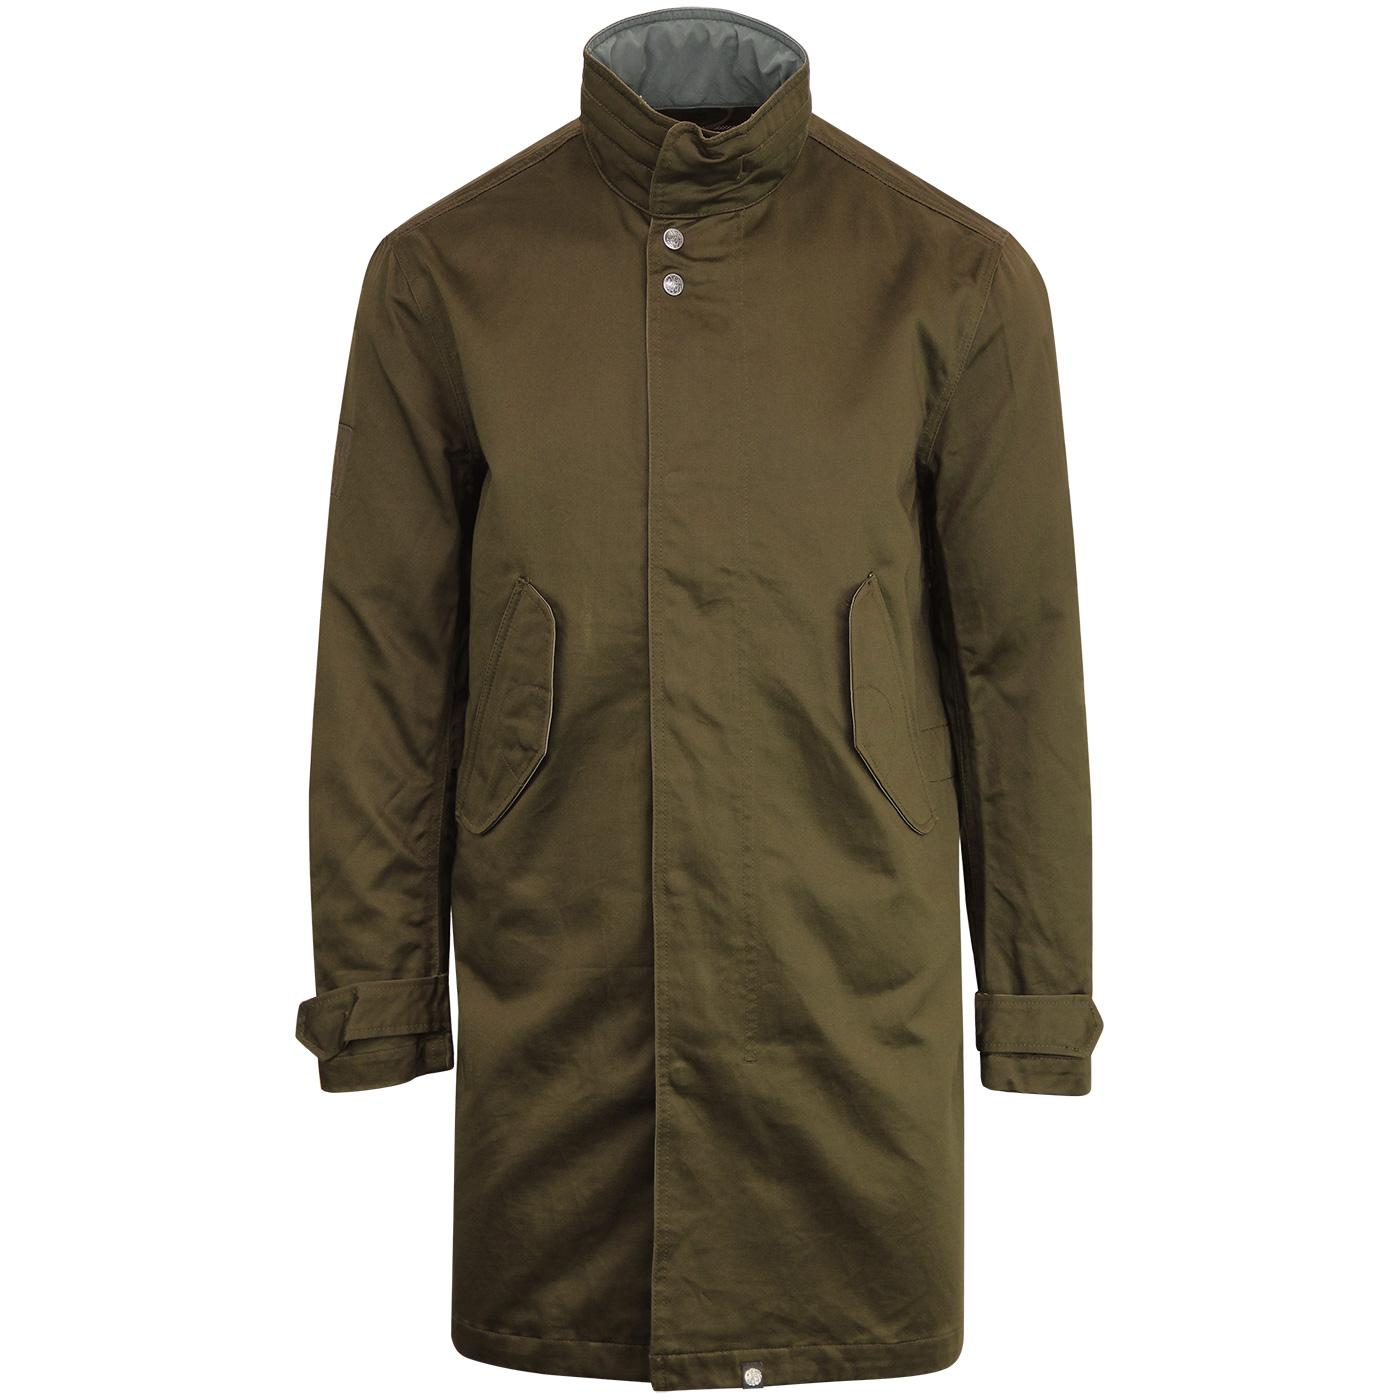 PRETTY GREEN Men's Retro Mod Hooded Mac Coat KHAKI